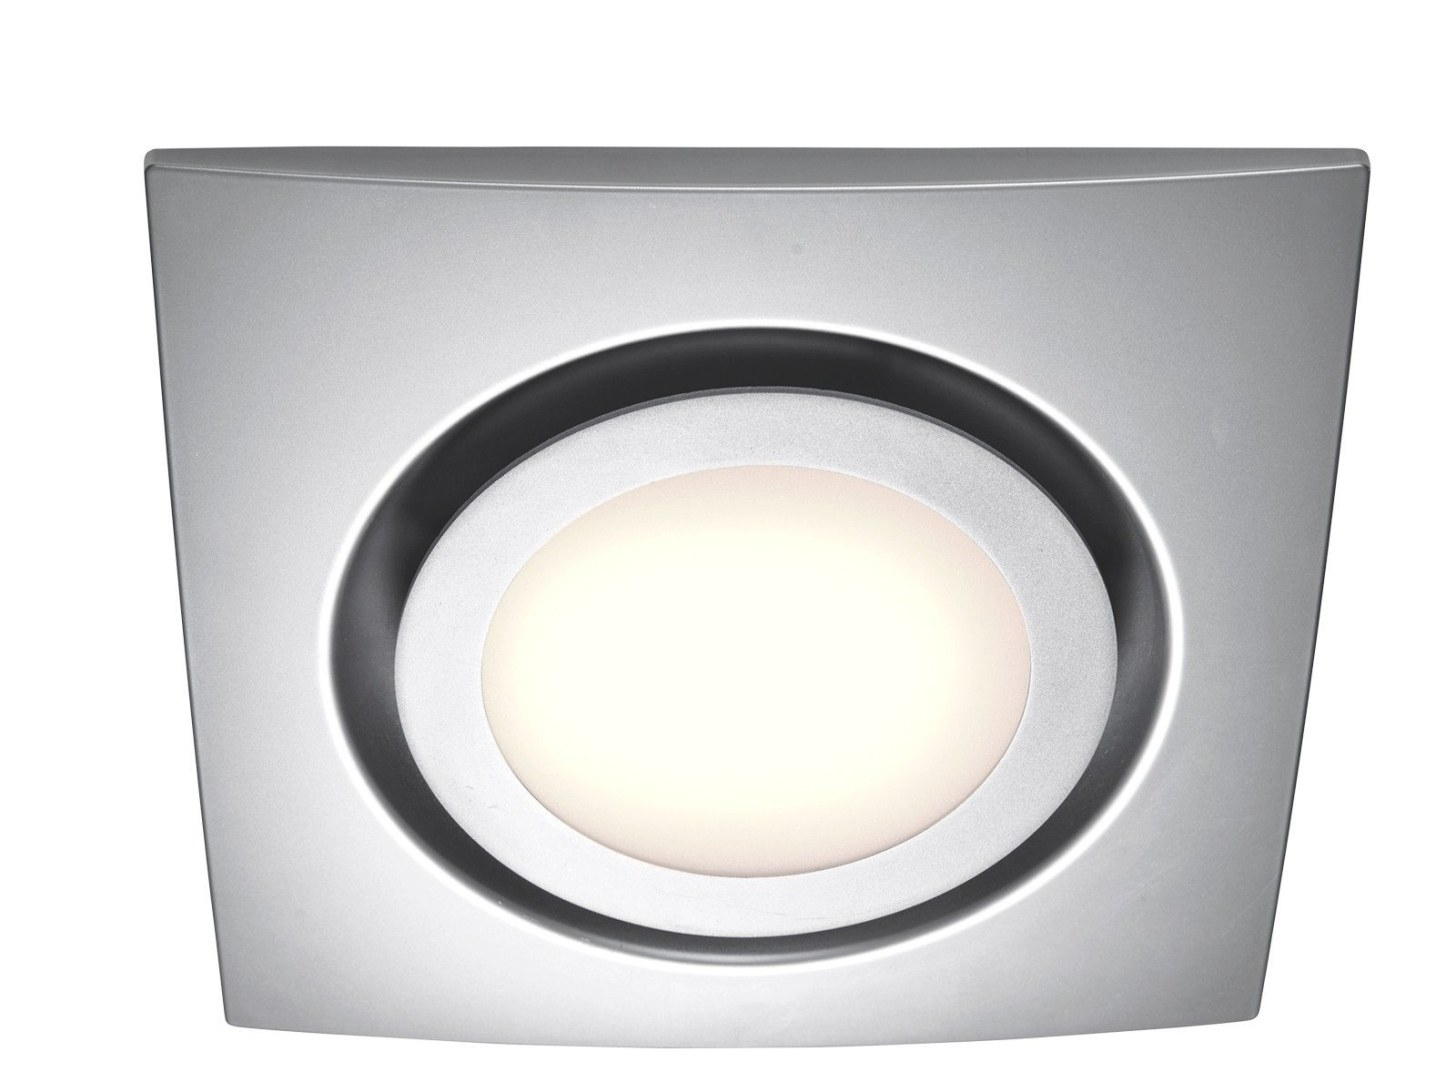 Bathroom Ceiling Heat Lamps - All About Bathroom regarding Heat Lamps In Bathrooms